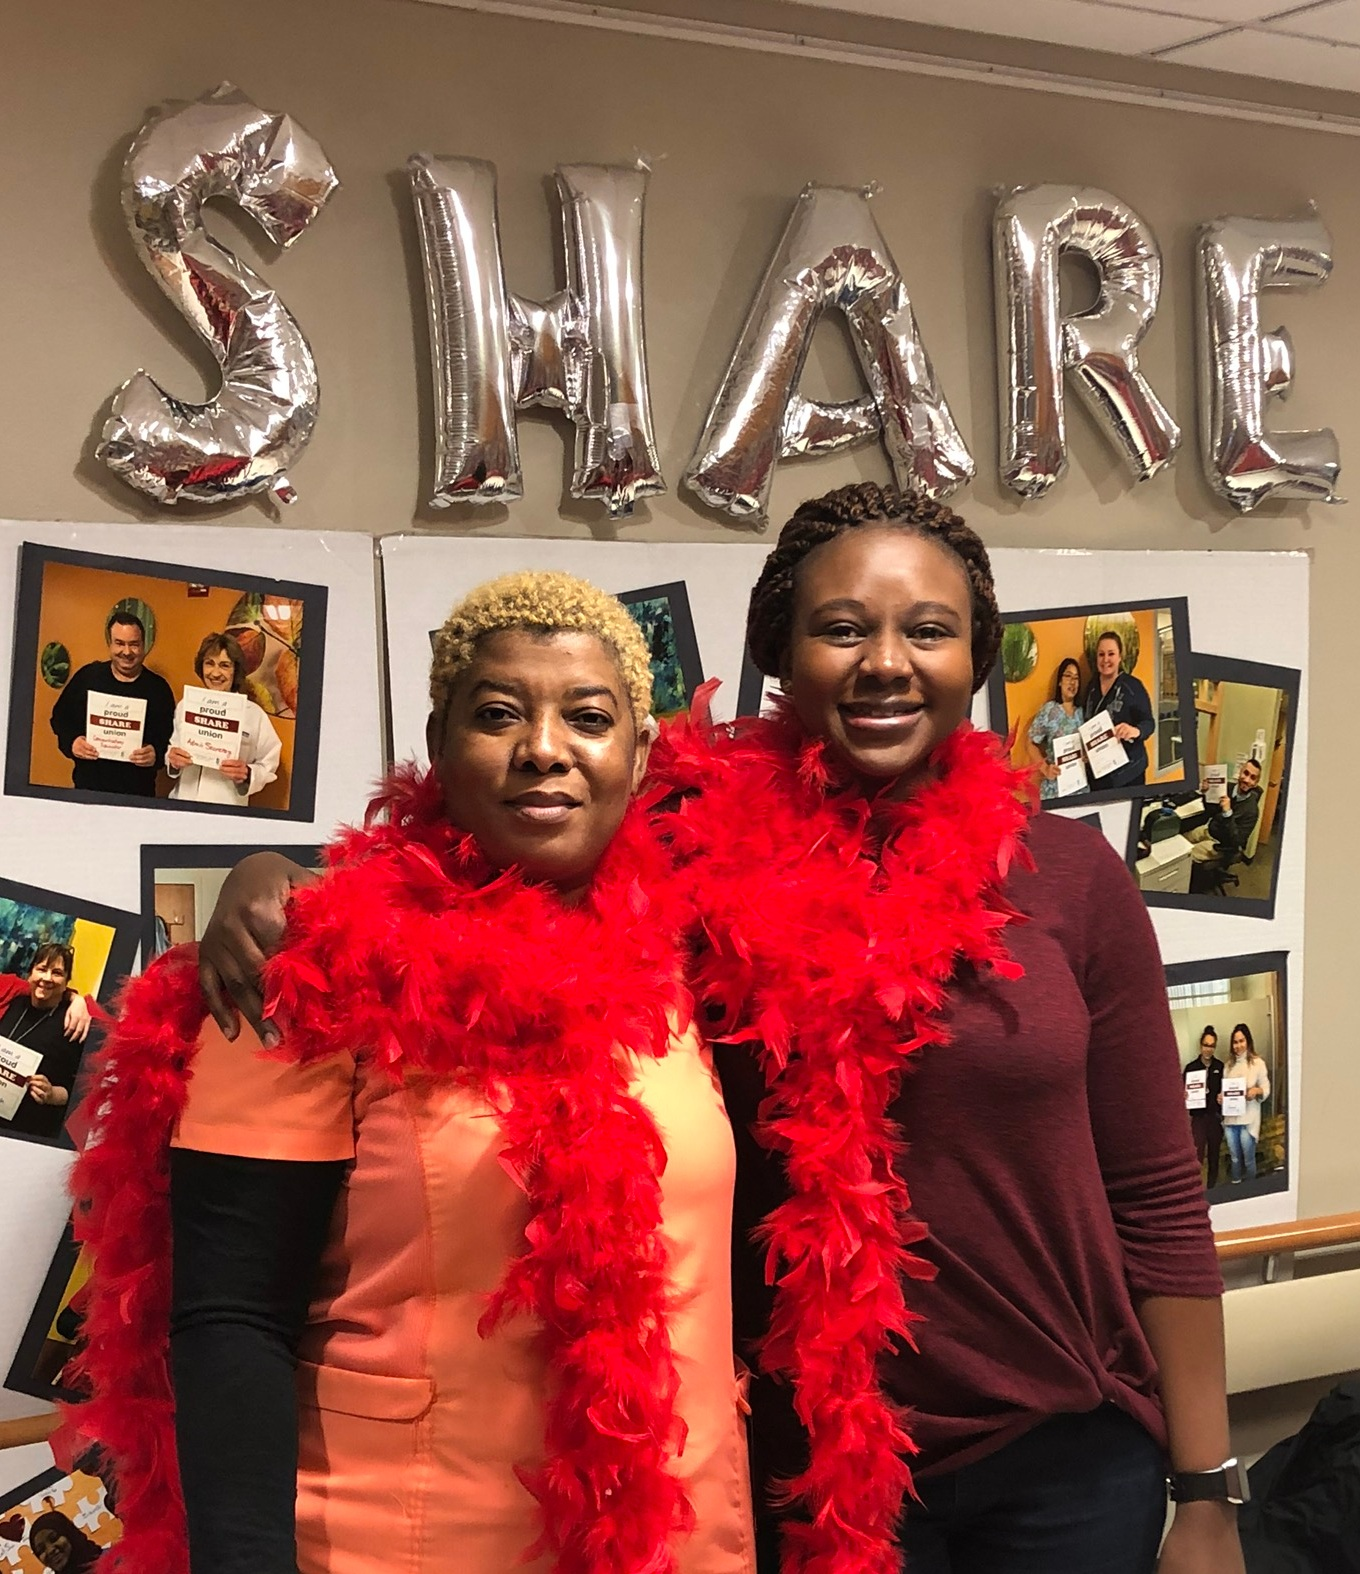 All day and all night: the care doesn't end. Check out  the full gallery of SHARE Caregivers online . Hundreds of photos and growing. . . .